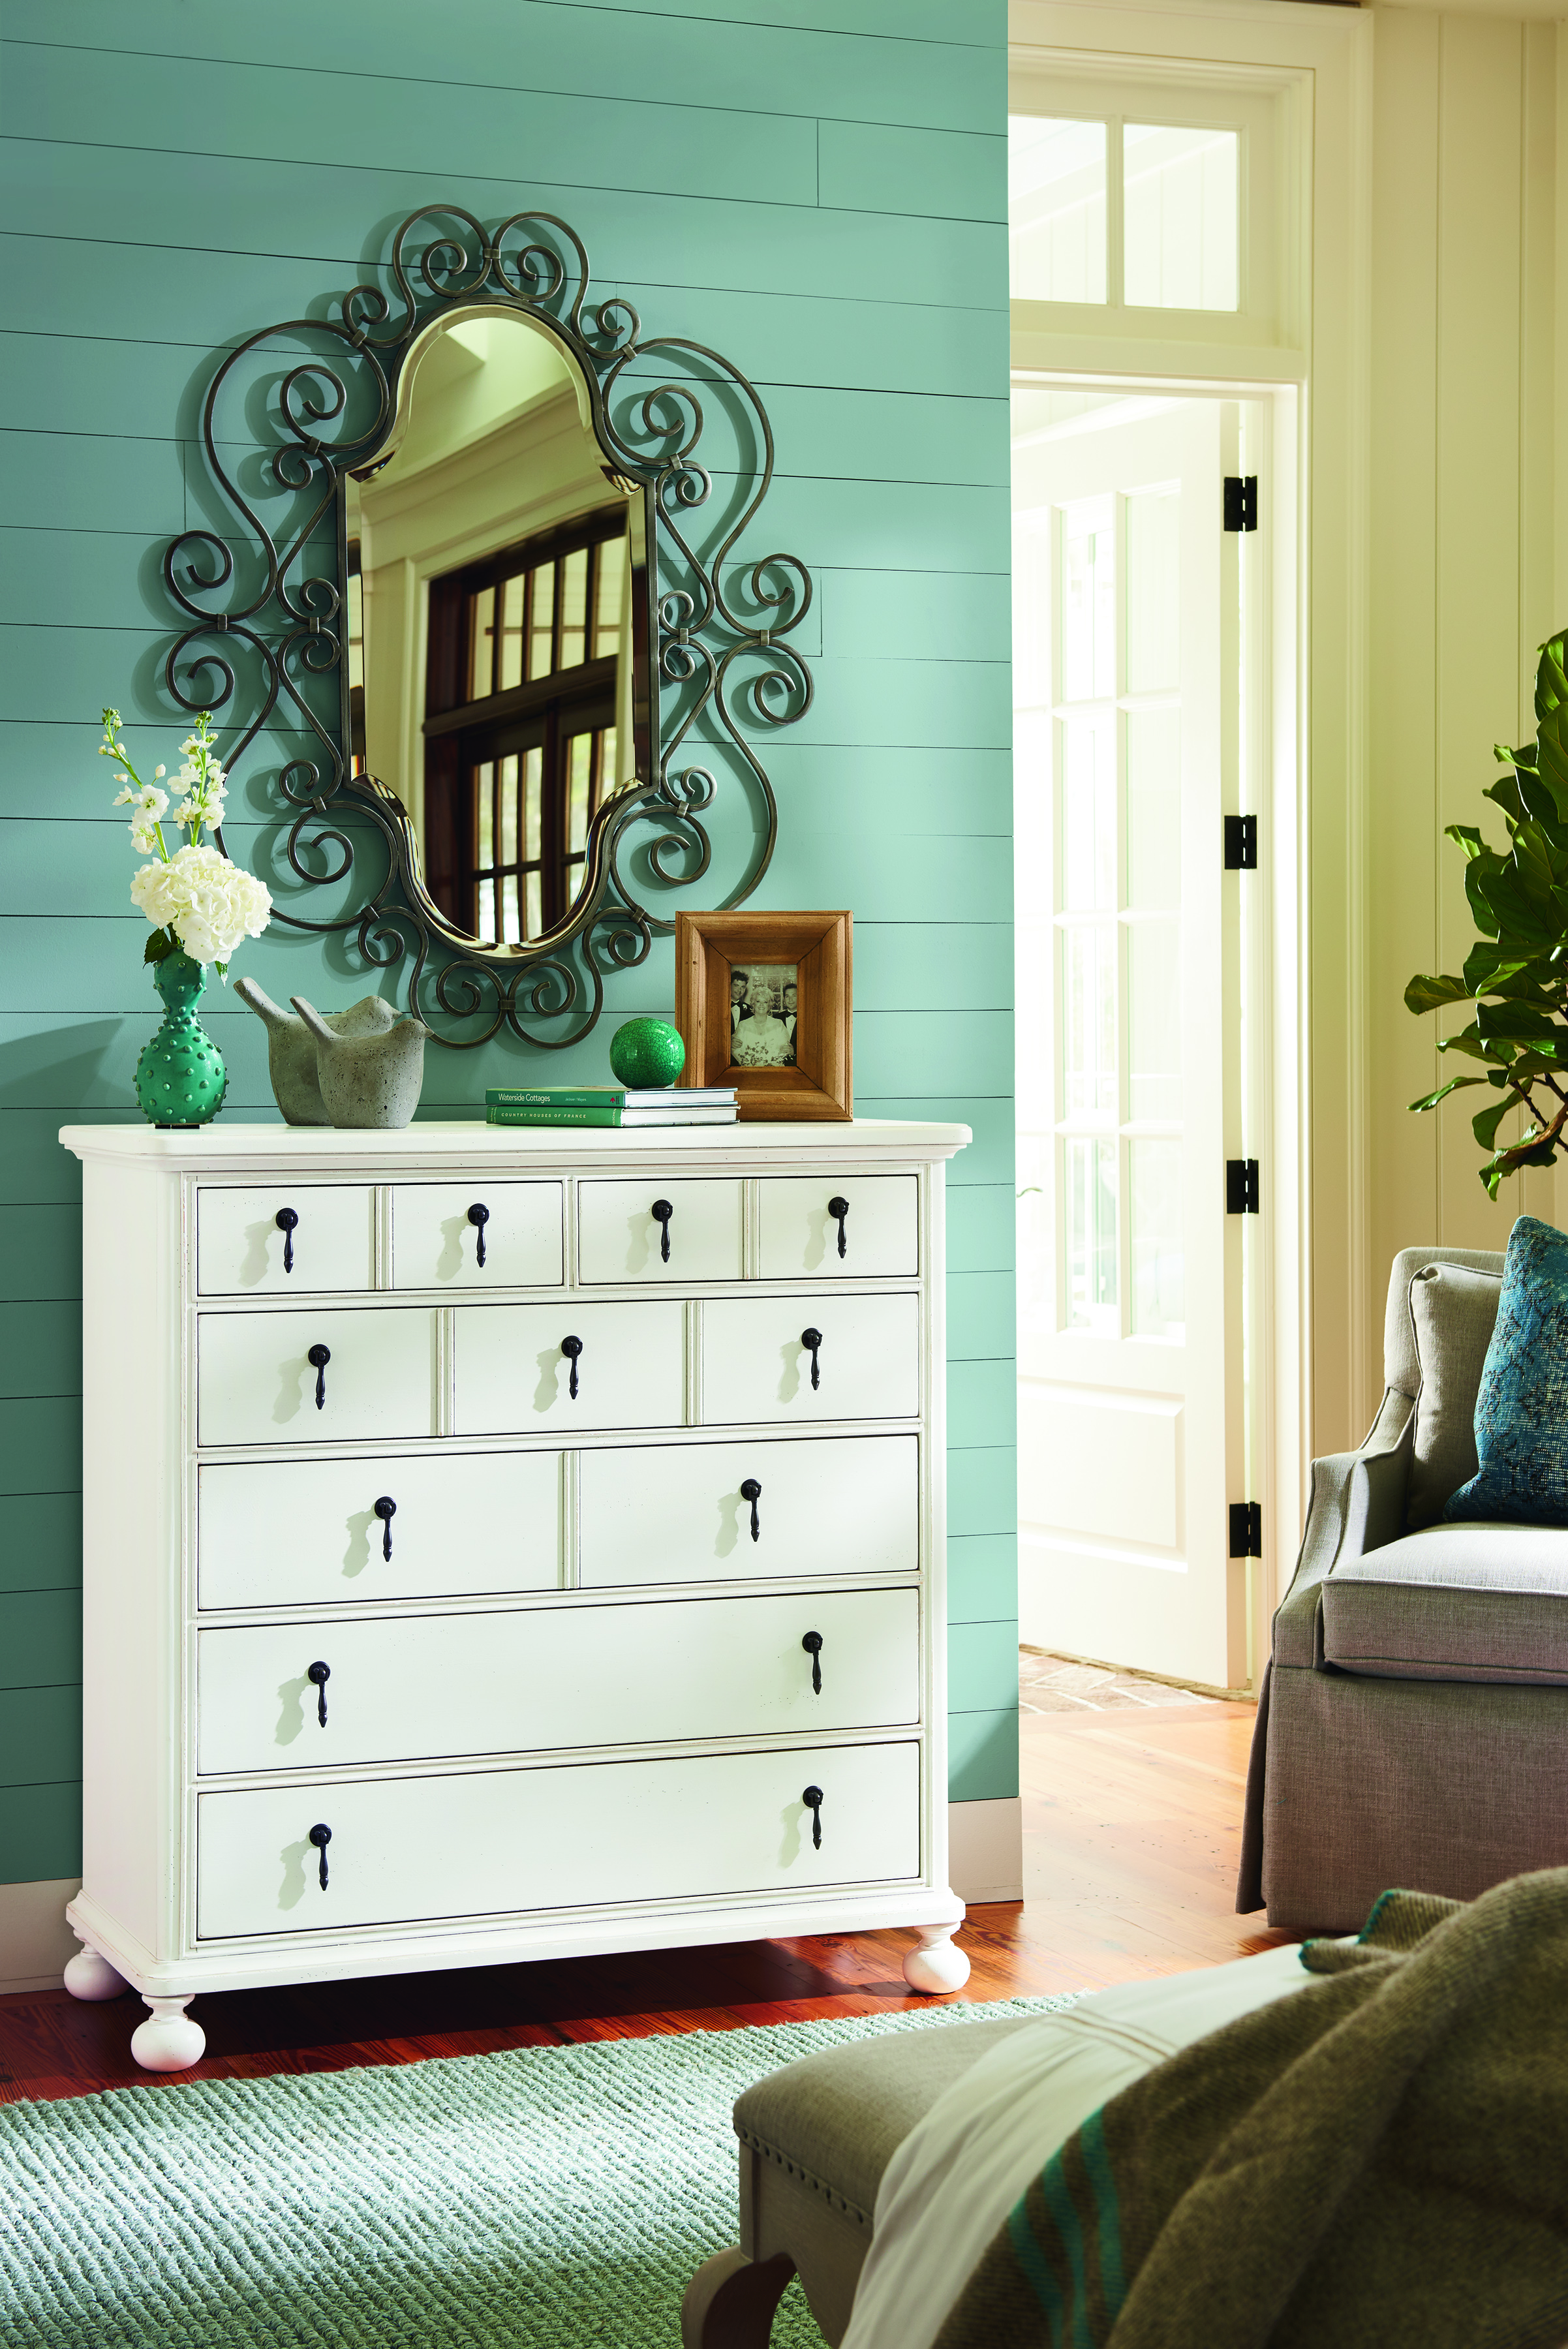 Bungalow chest in an Oleander finish from Paula Deen for Universal Furniture